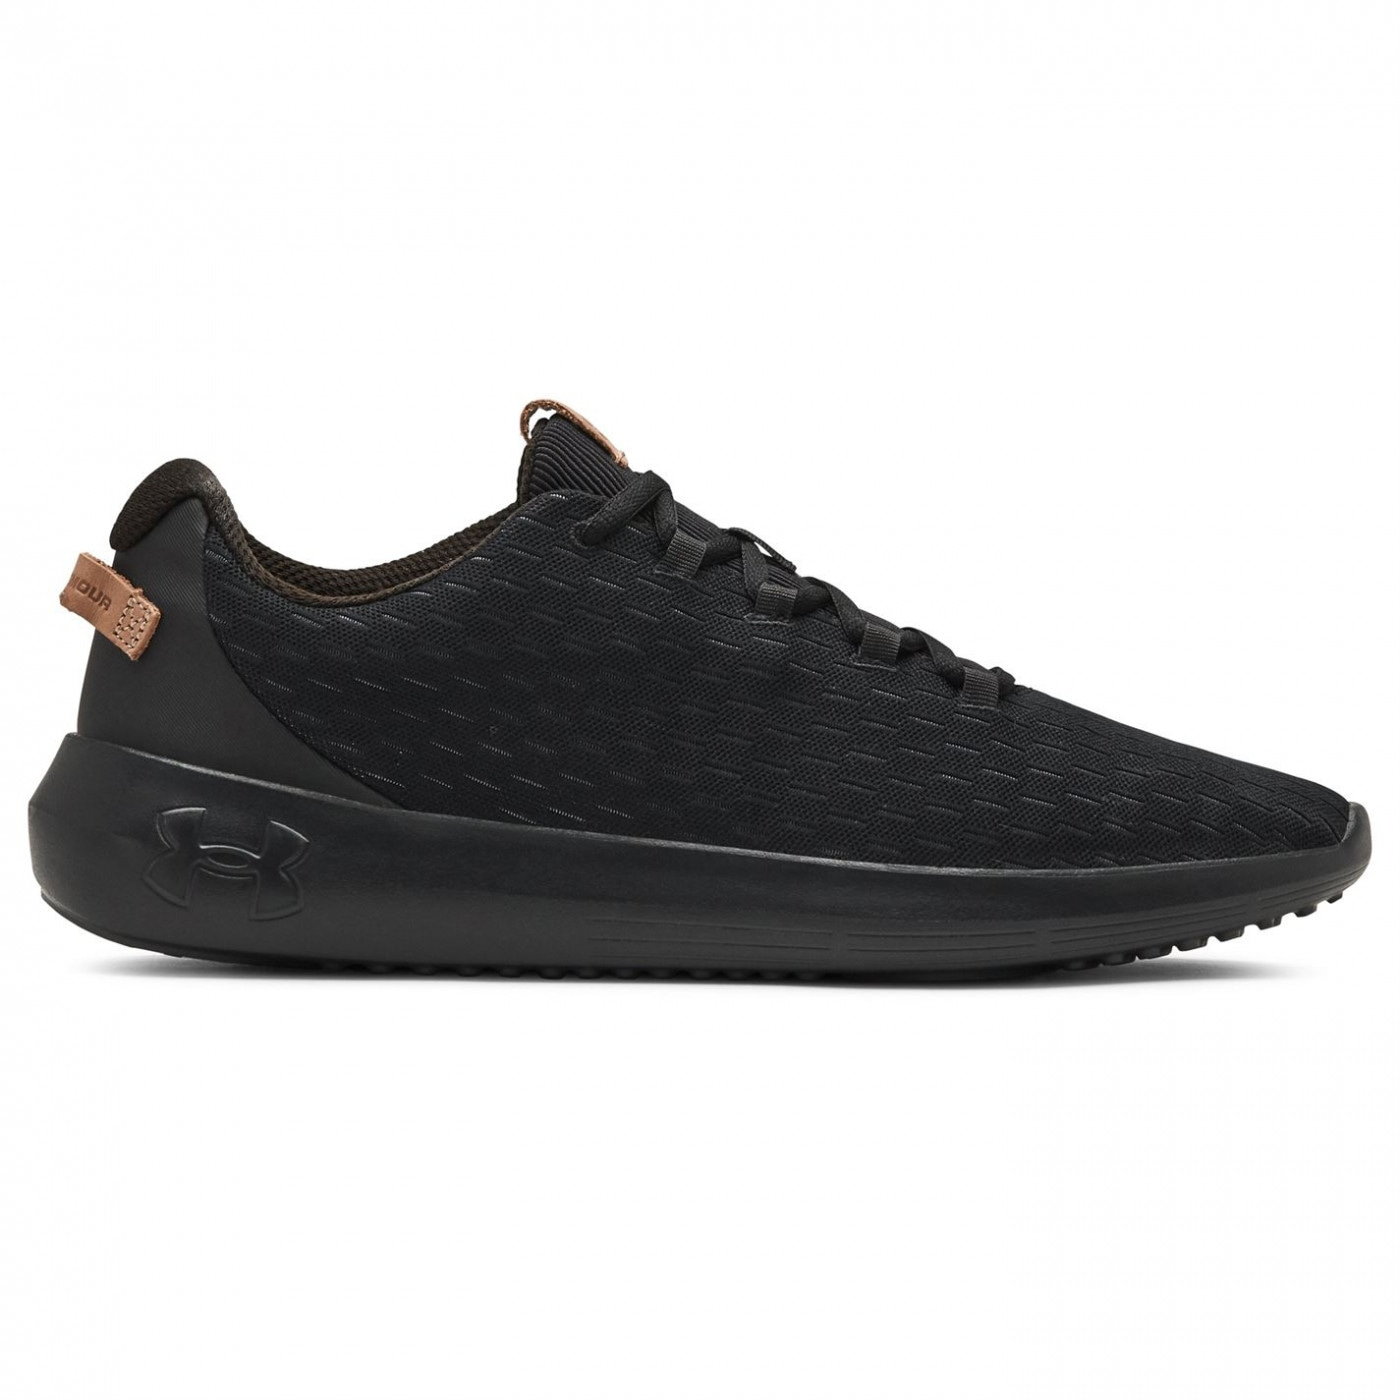 Under Armour Ripple Trainers Mens